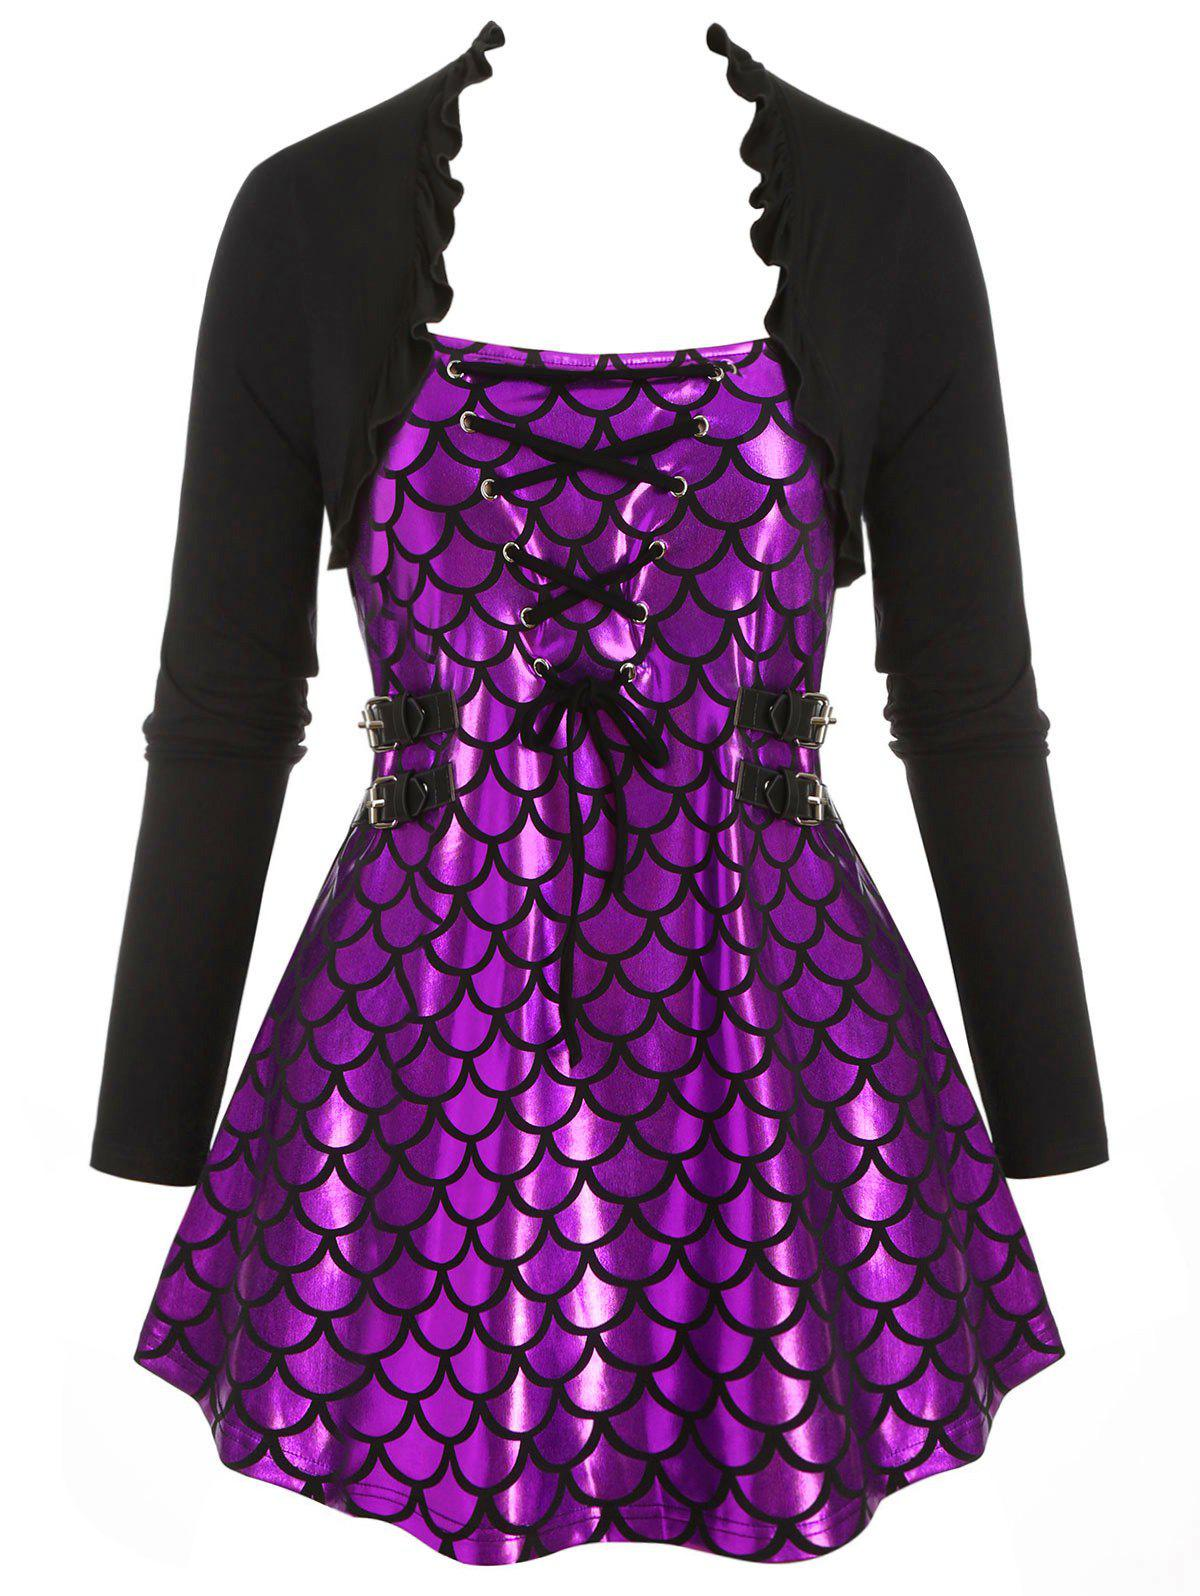 Mermaid Scales Print Flounces Lace Up Buckle Plus Size Top - PURPLE 1X